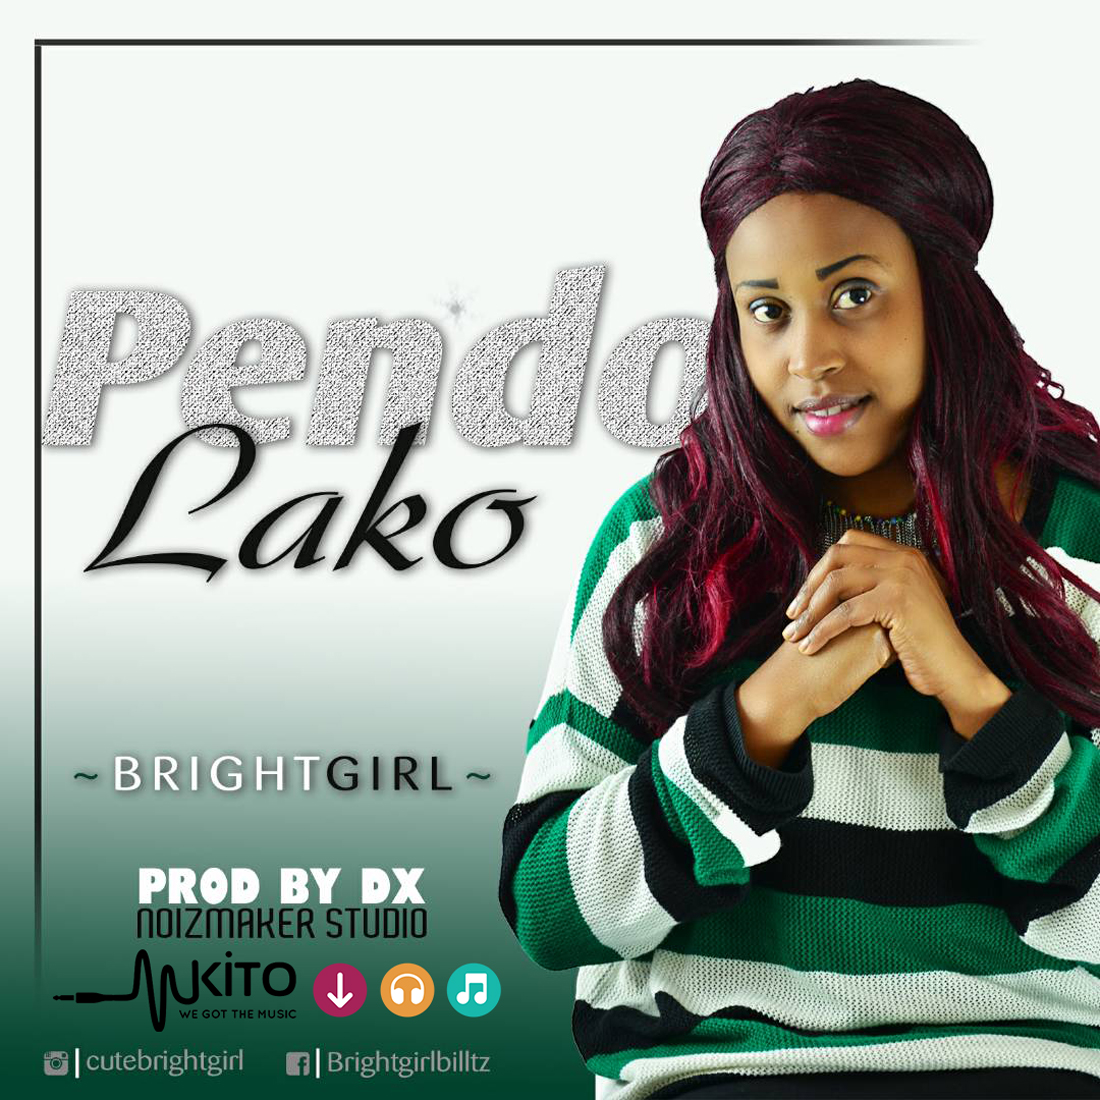 Bright Girl - Pendo Lako